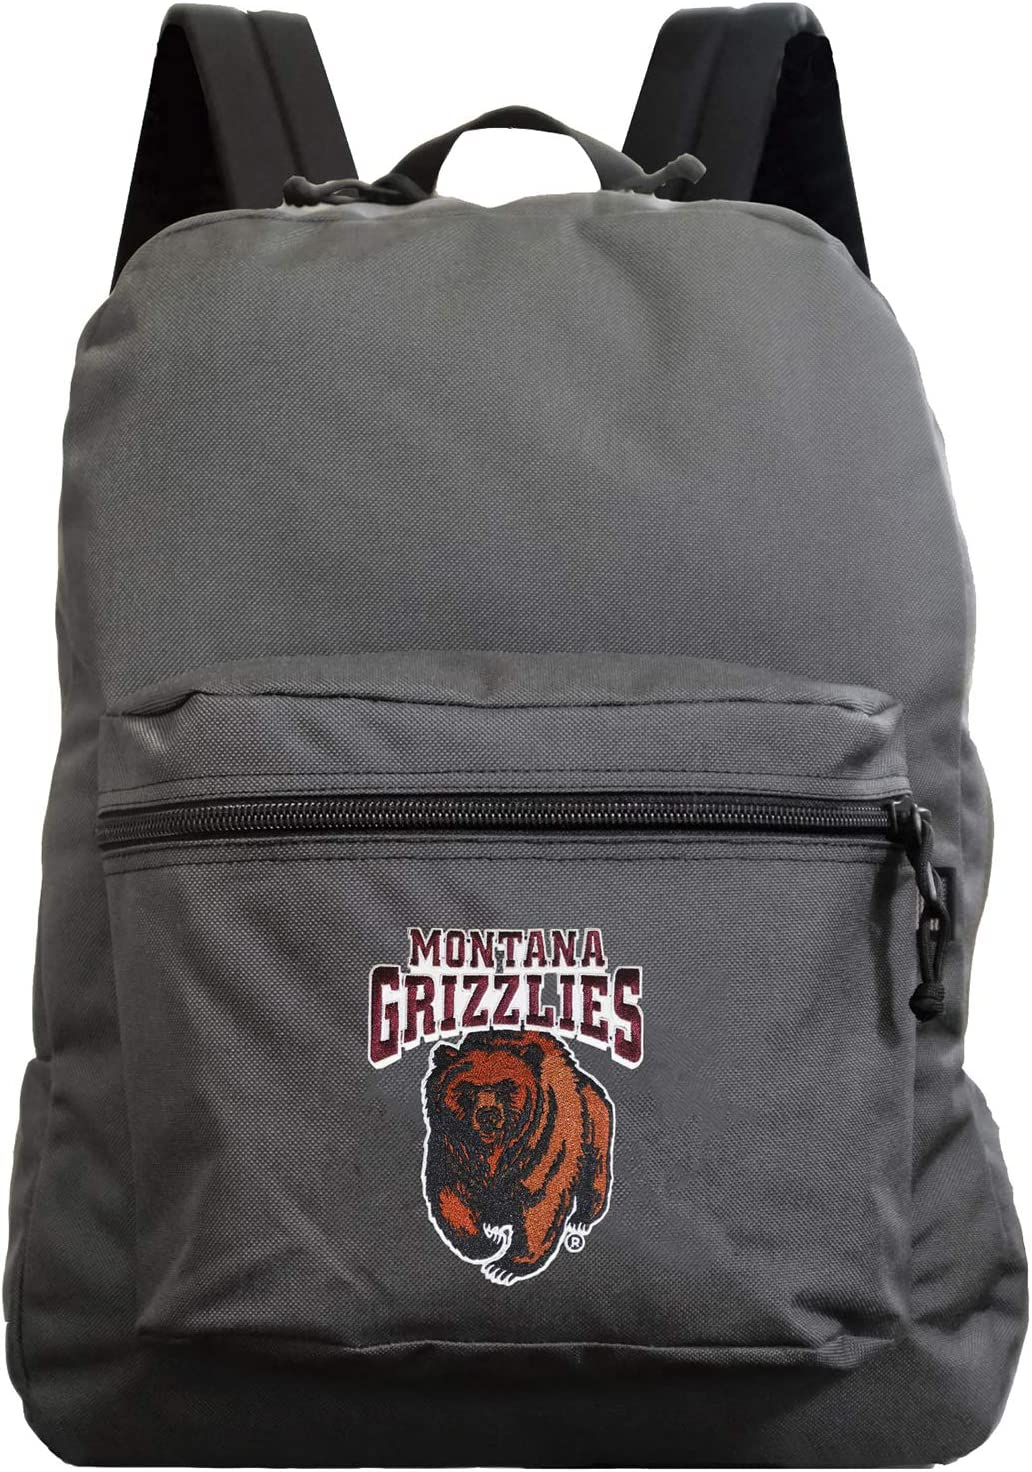 Gray Denco Made in The USA Premium Backpack 16-inches